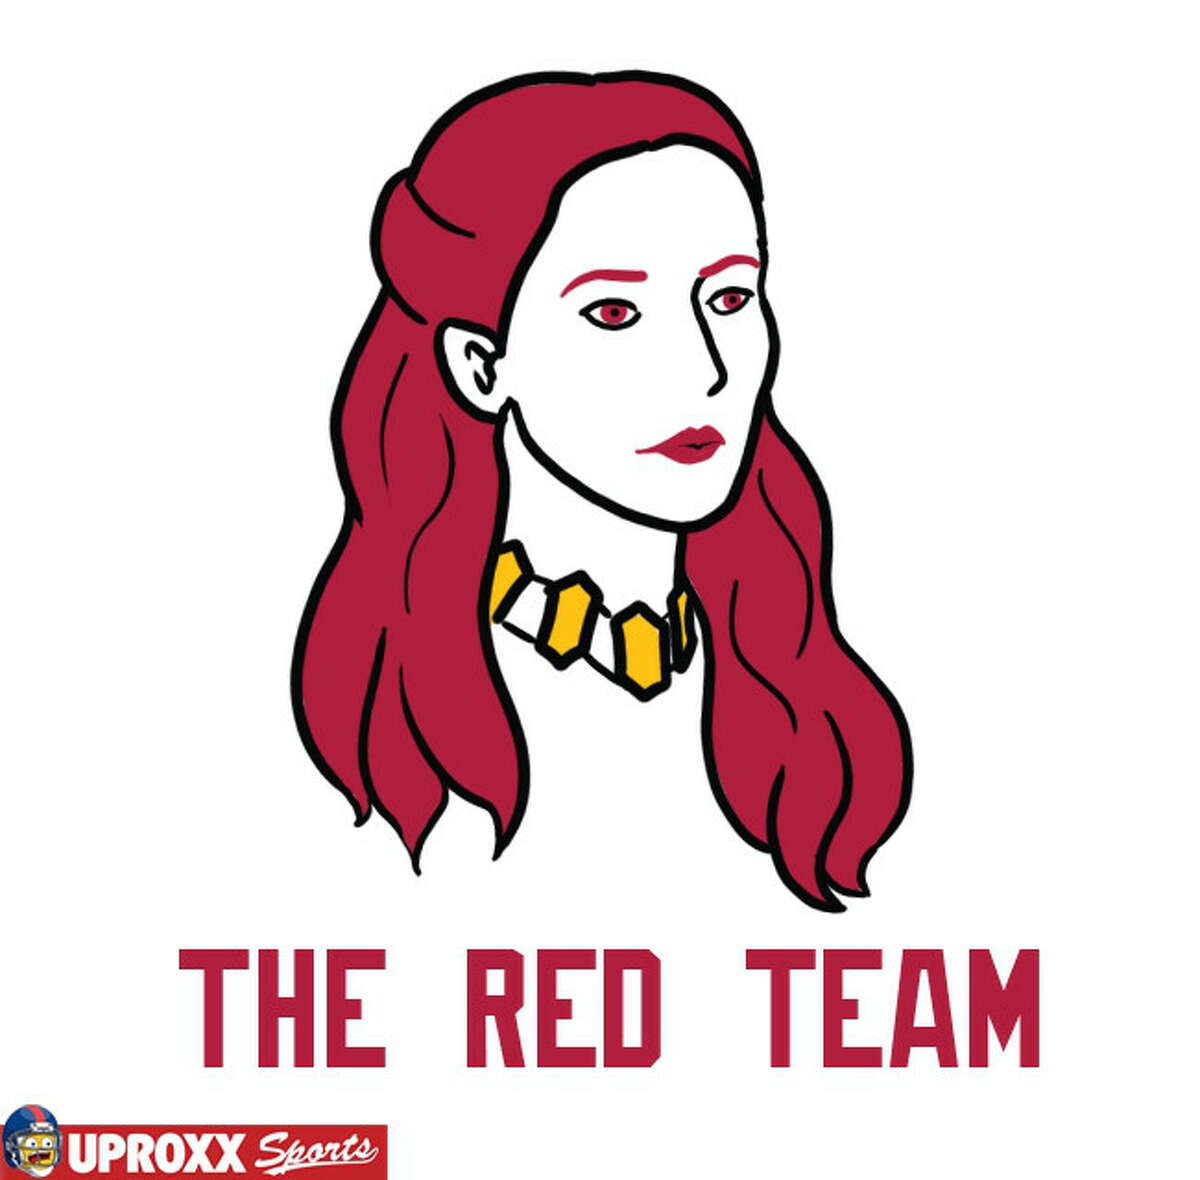 Arizona Cardinals - Melisandre The Cardinals are a team named after a bird, which is named after the color that bird is, which is red. Melisandre is the red woman. Also, she's capable of raising the dead, and so can the Arizona Cardinals (see: Carson Palmer and Kurt Warner's careers).